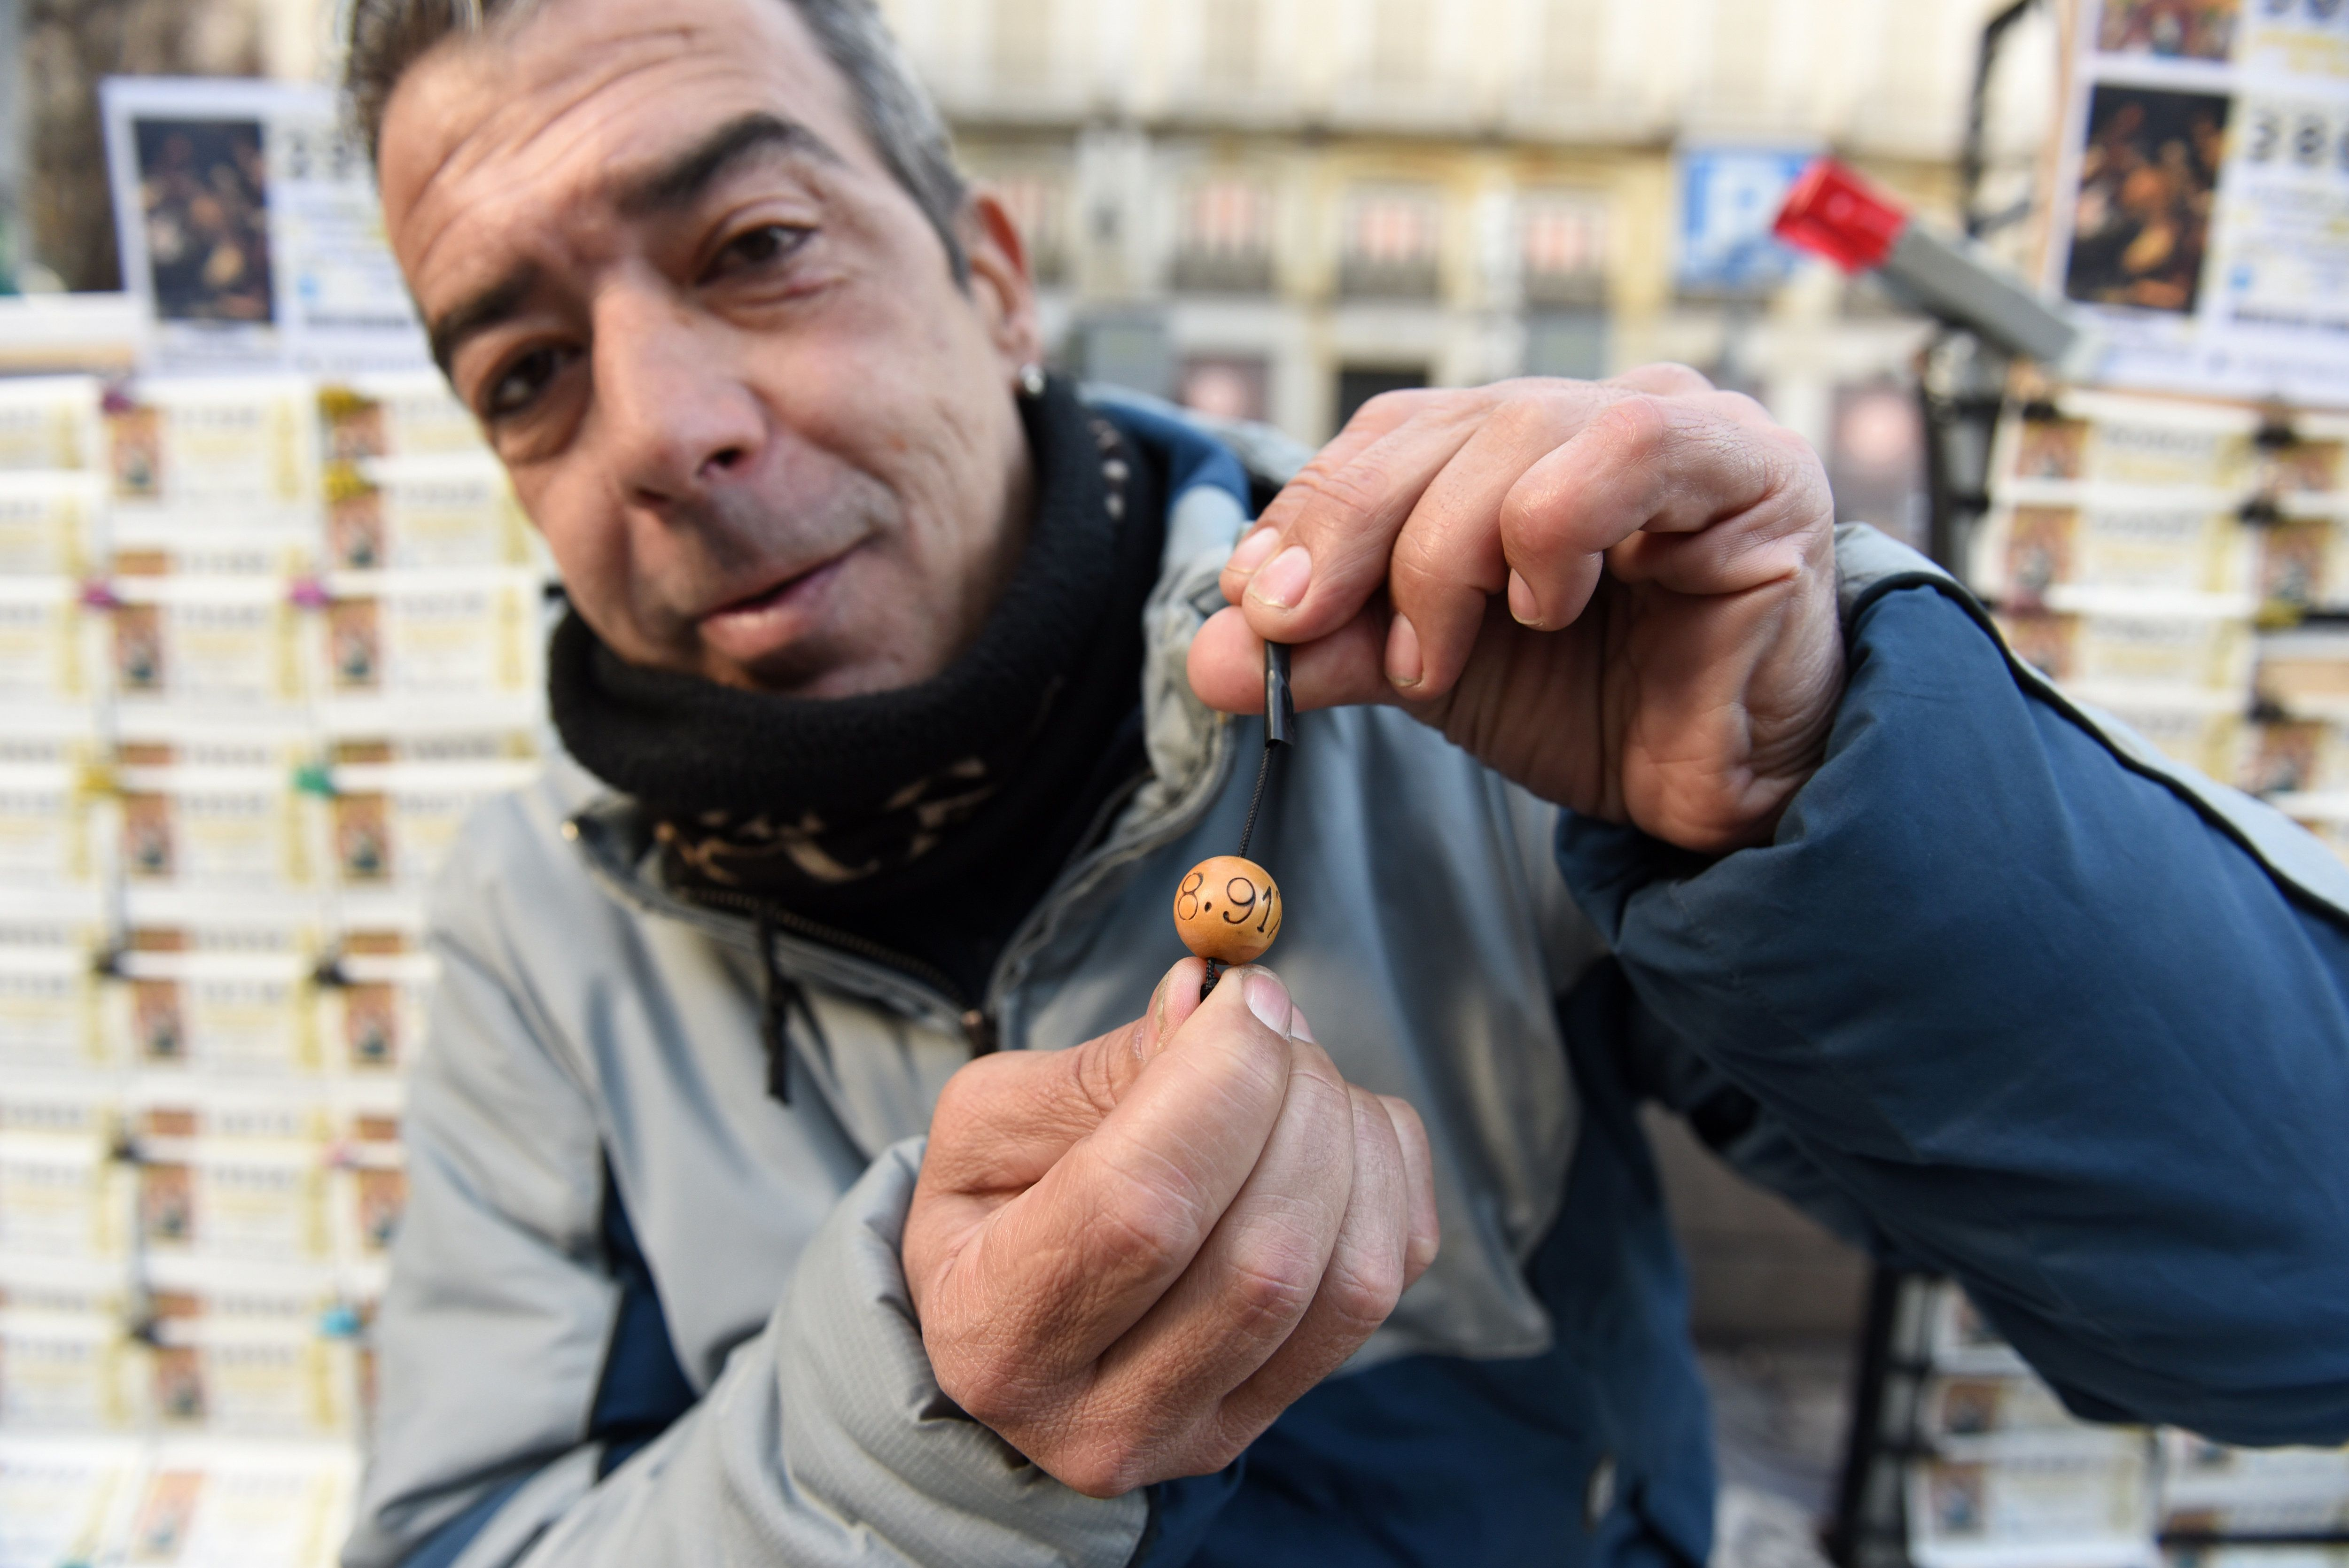 MADRID, SPAIN - 2018/12/20: A vendor of tickets of the El Gordo Christmas lottery seen in Madrid. The famous draw El Gordo would be celebrated on December 22, 2018. More than 2.3 billion euros ($3 billion) in prizes would be distributed. (Photo by John Milner/SOPA Images/LightRocket via Getty Images)